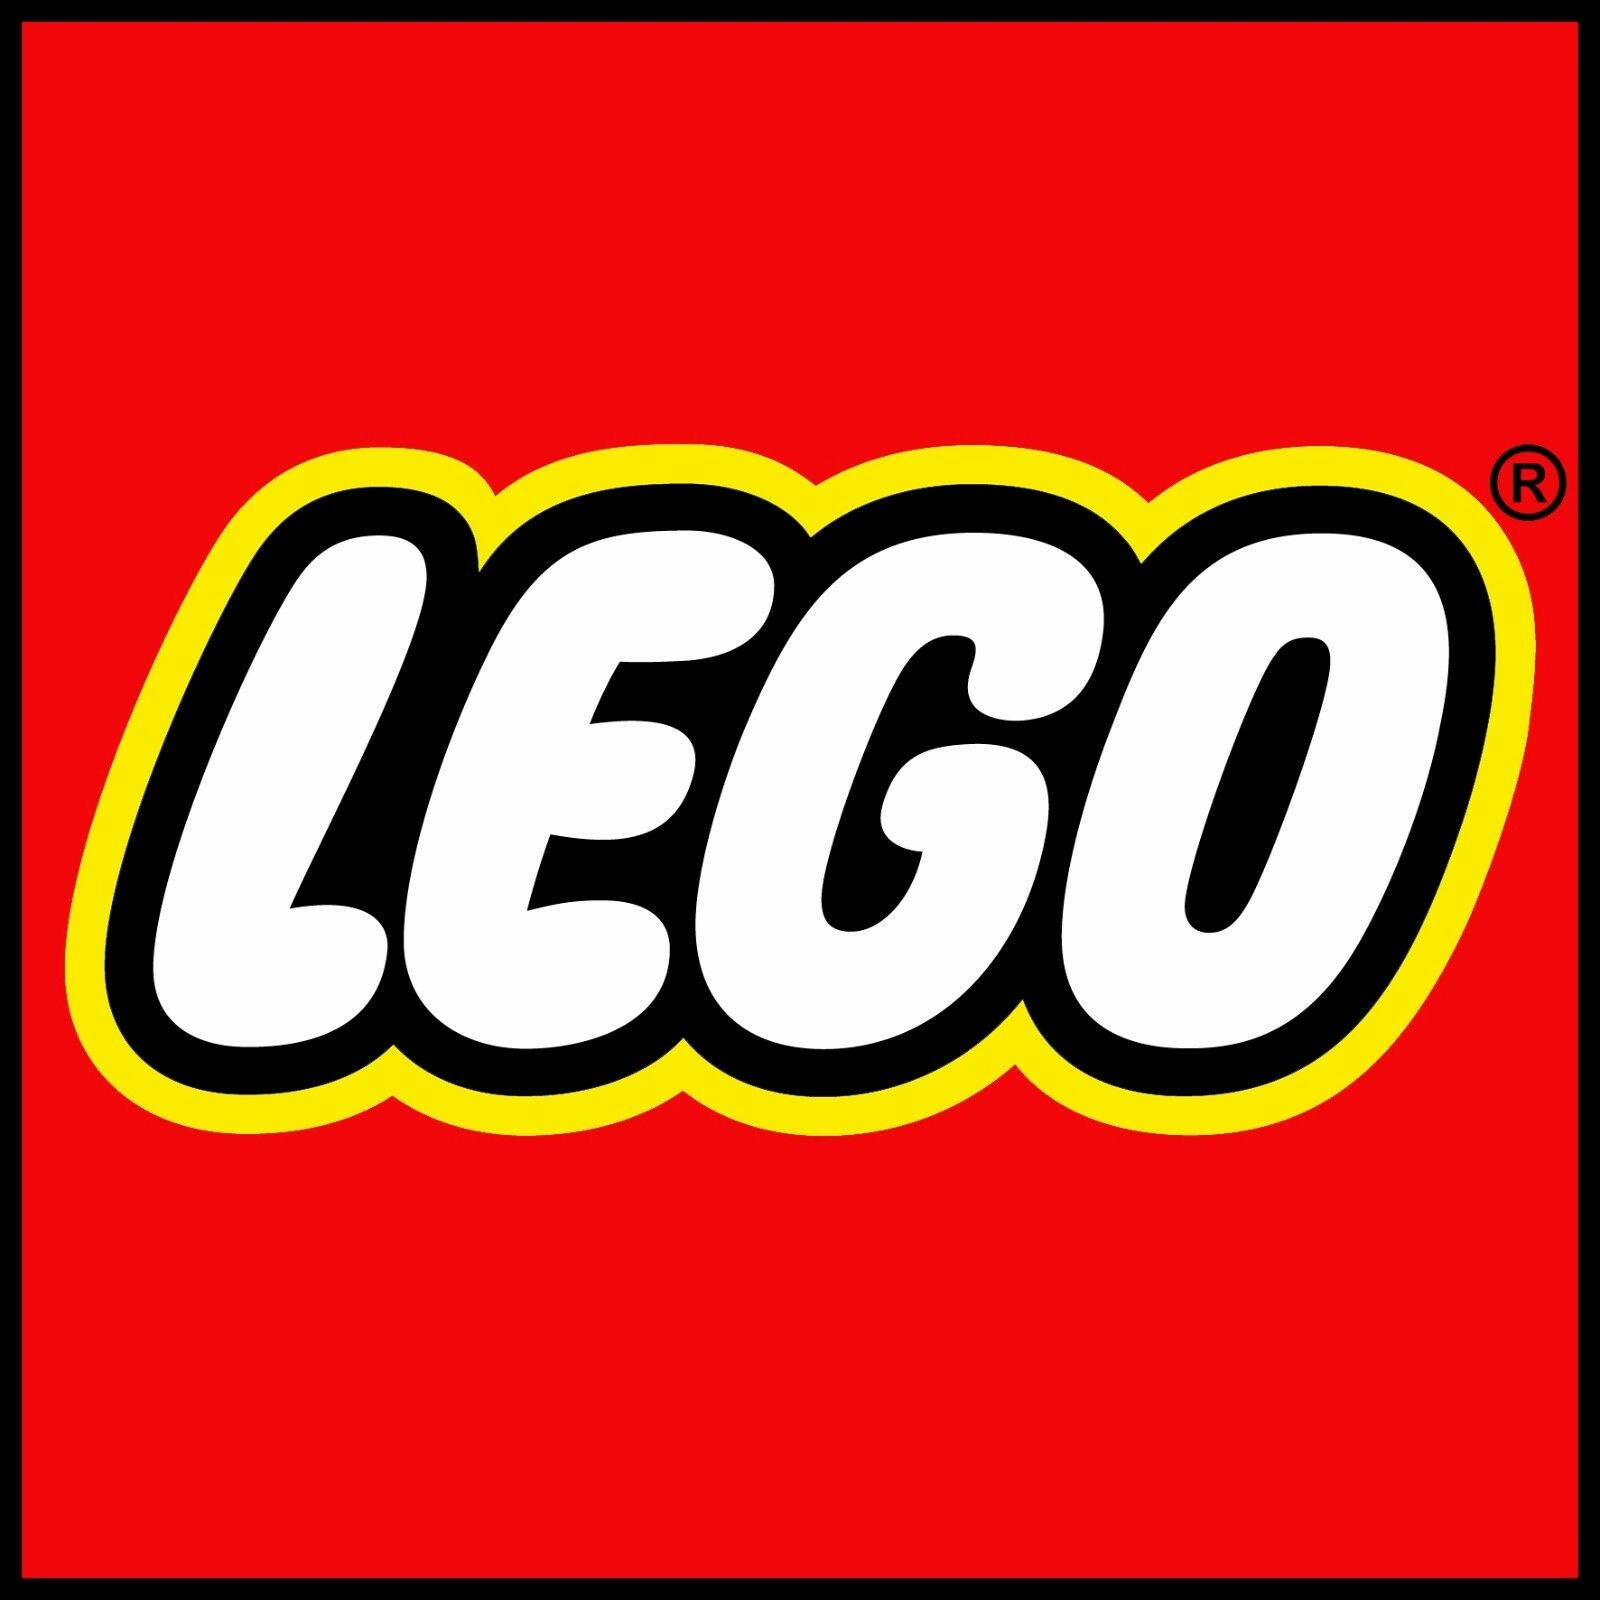 Lego Lot 2028   COMING SOON   TBU